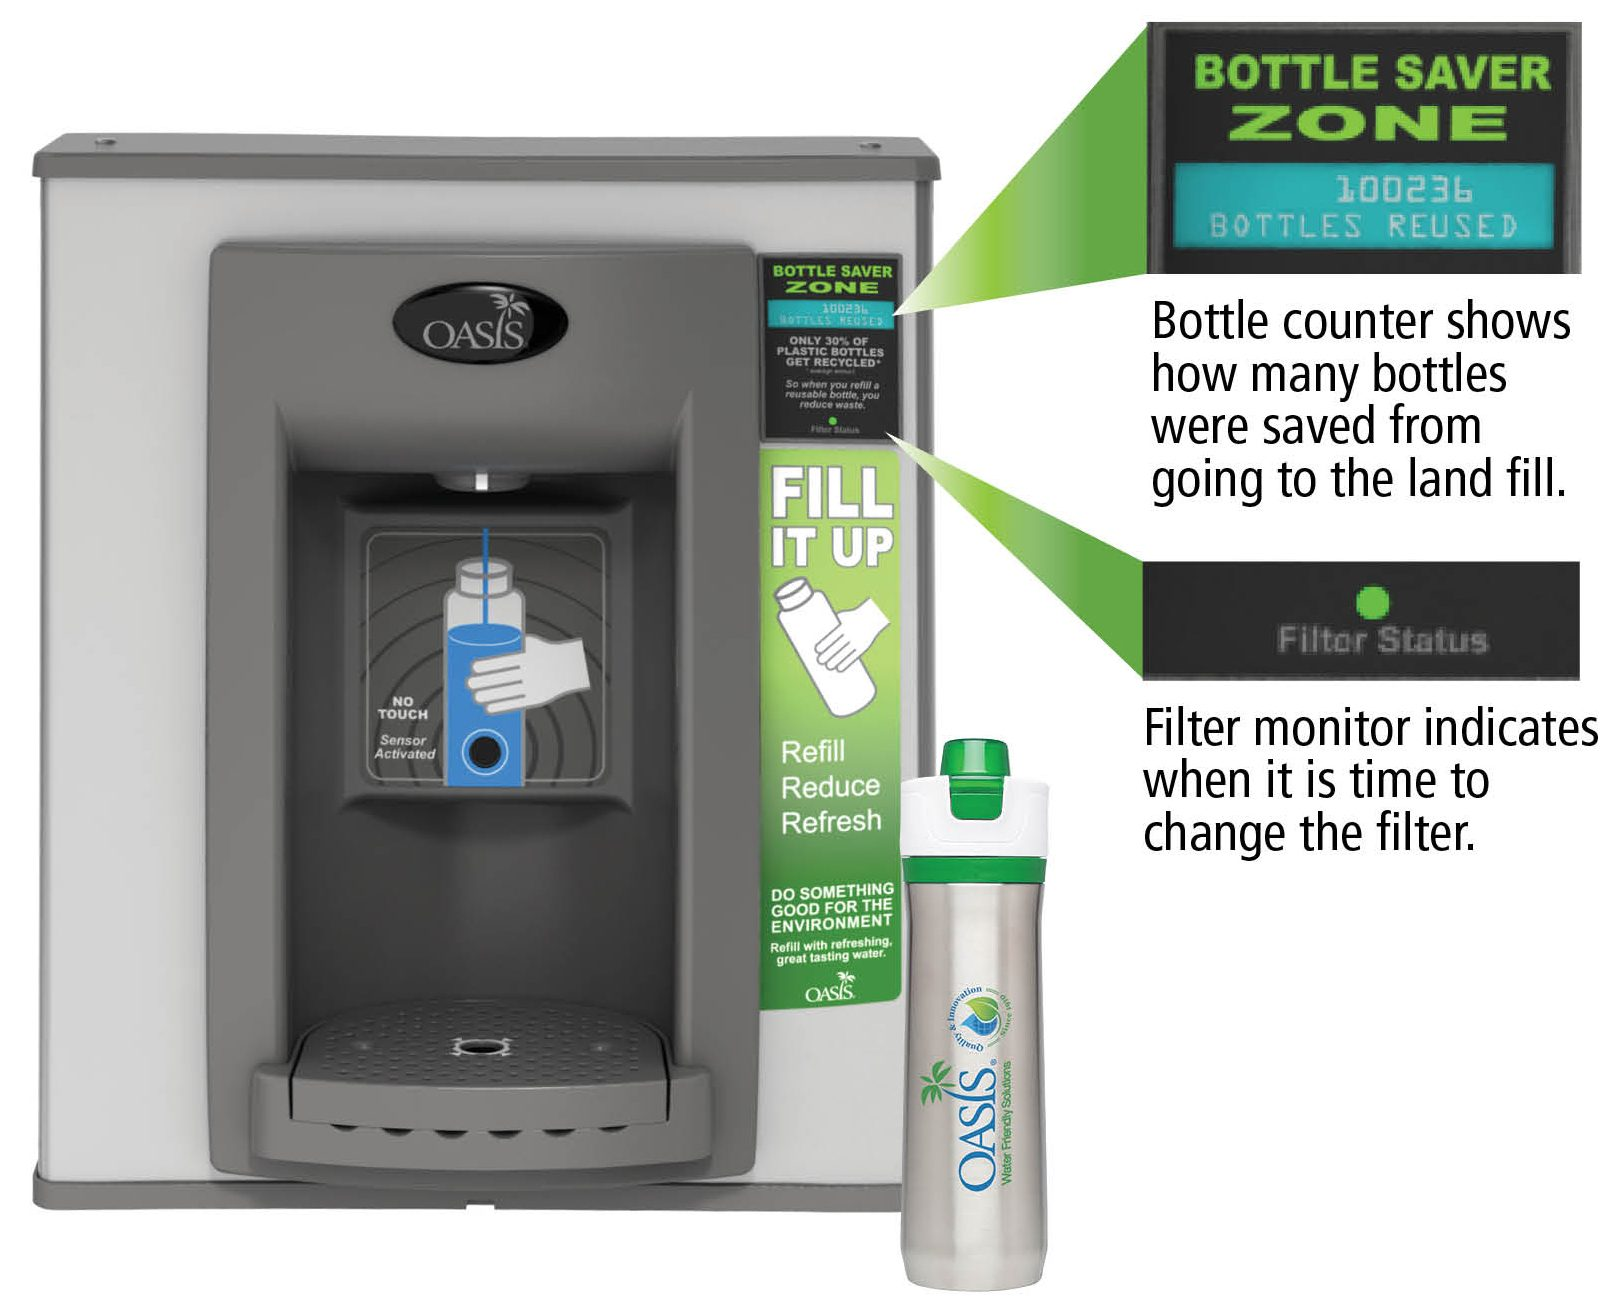 Water bottle filler with filter light